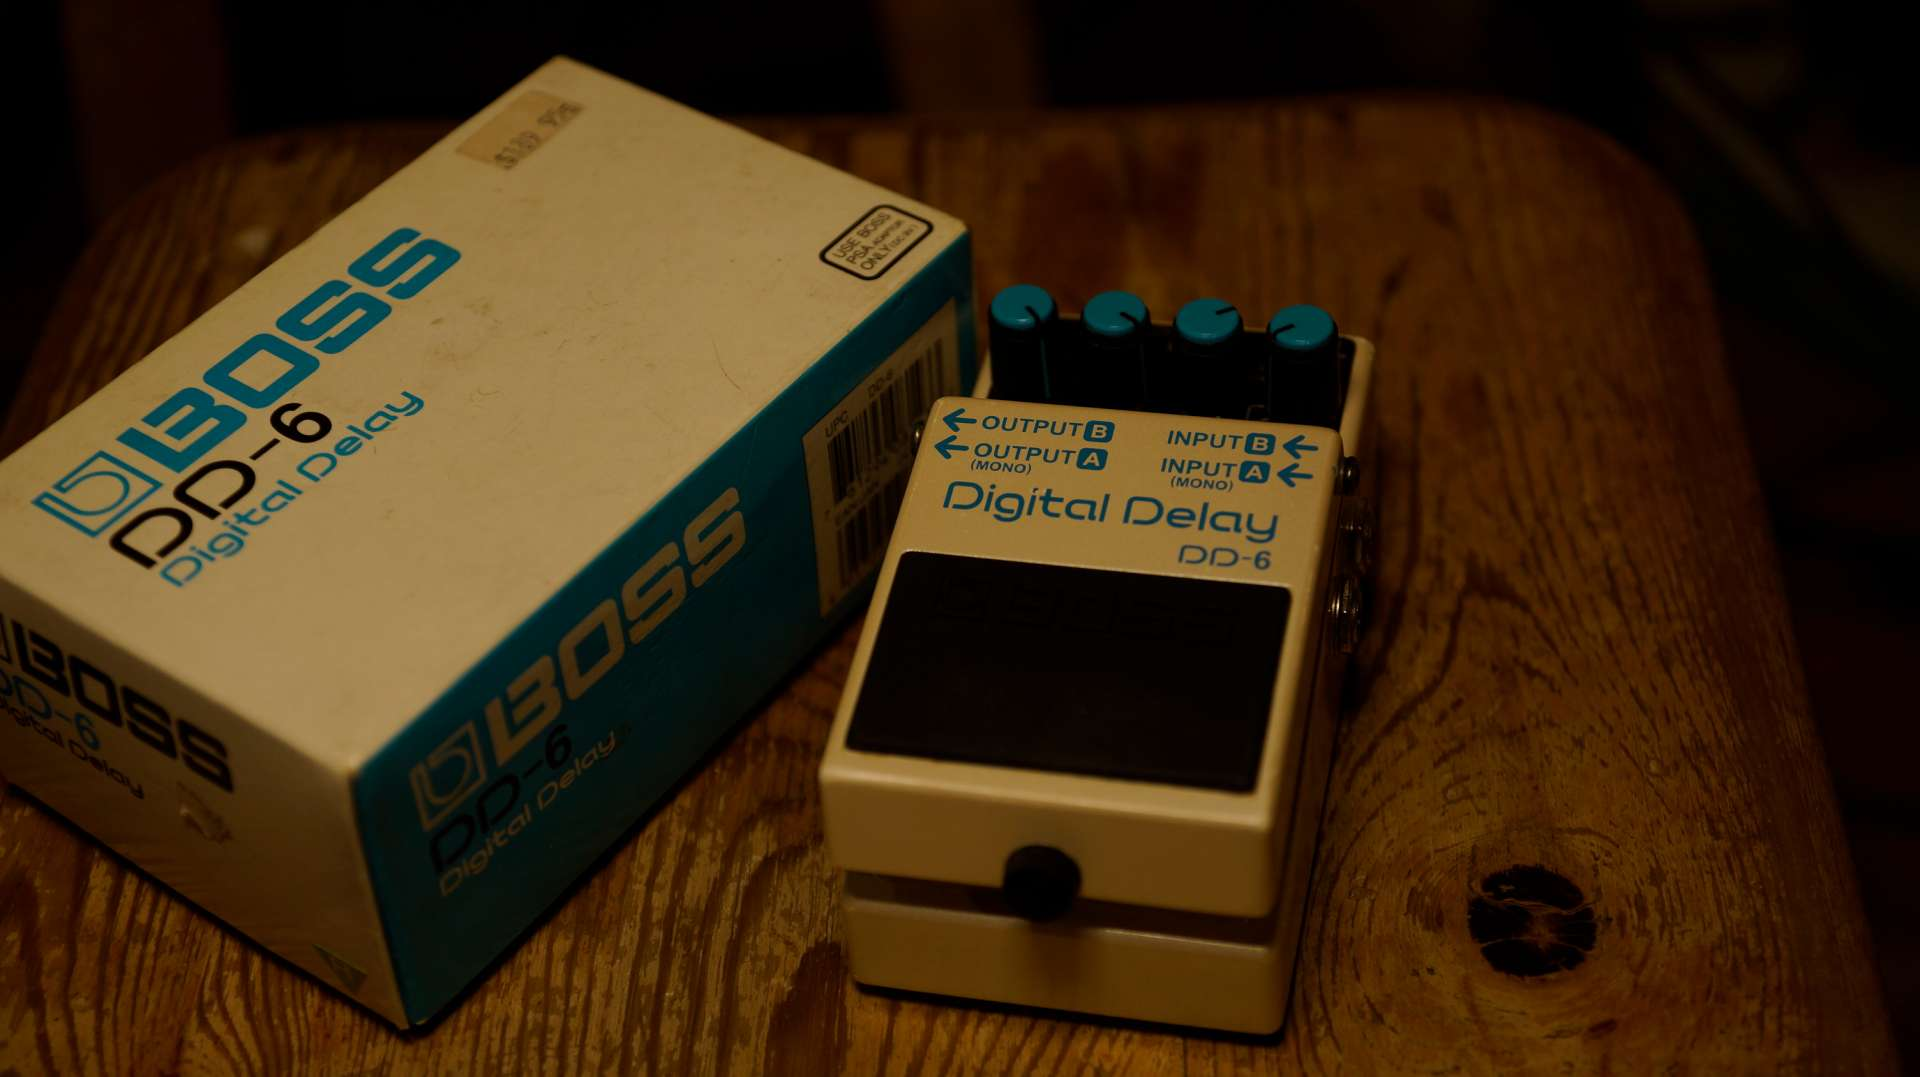 boss digital delay dd 7 manual